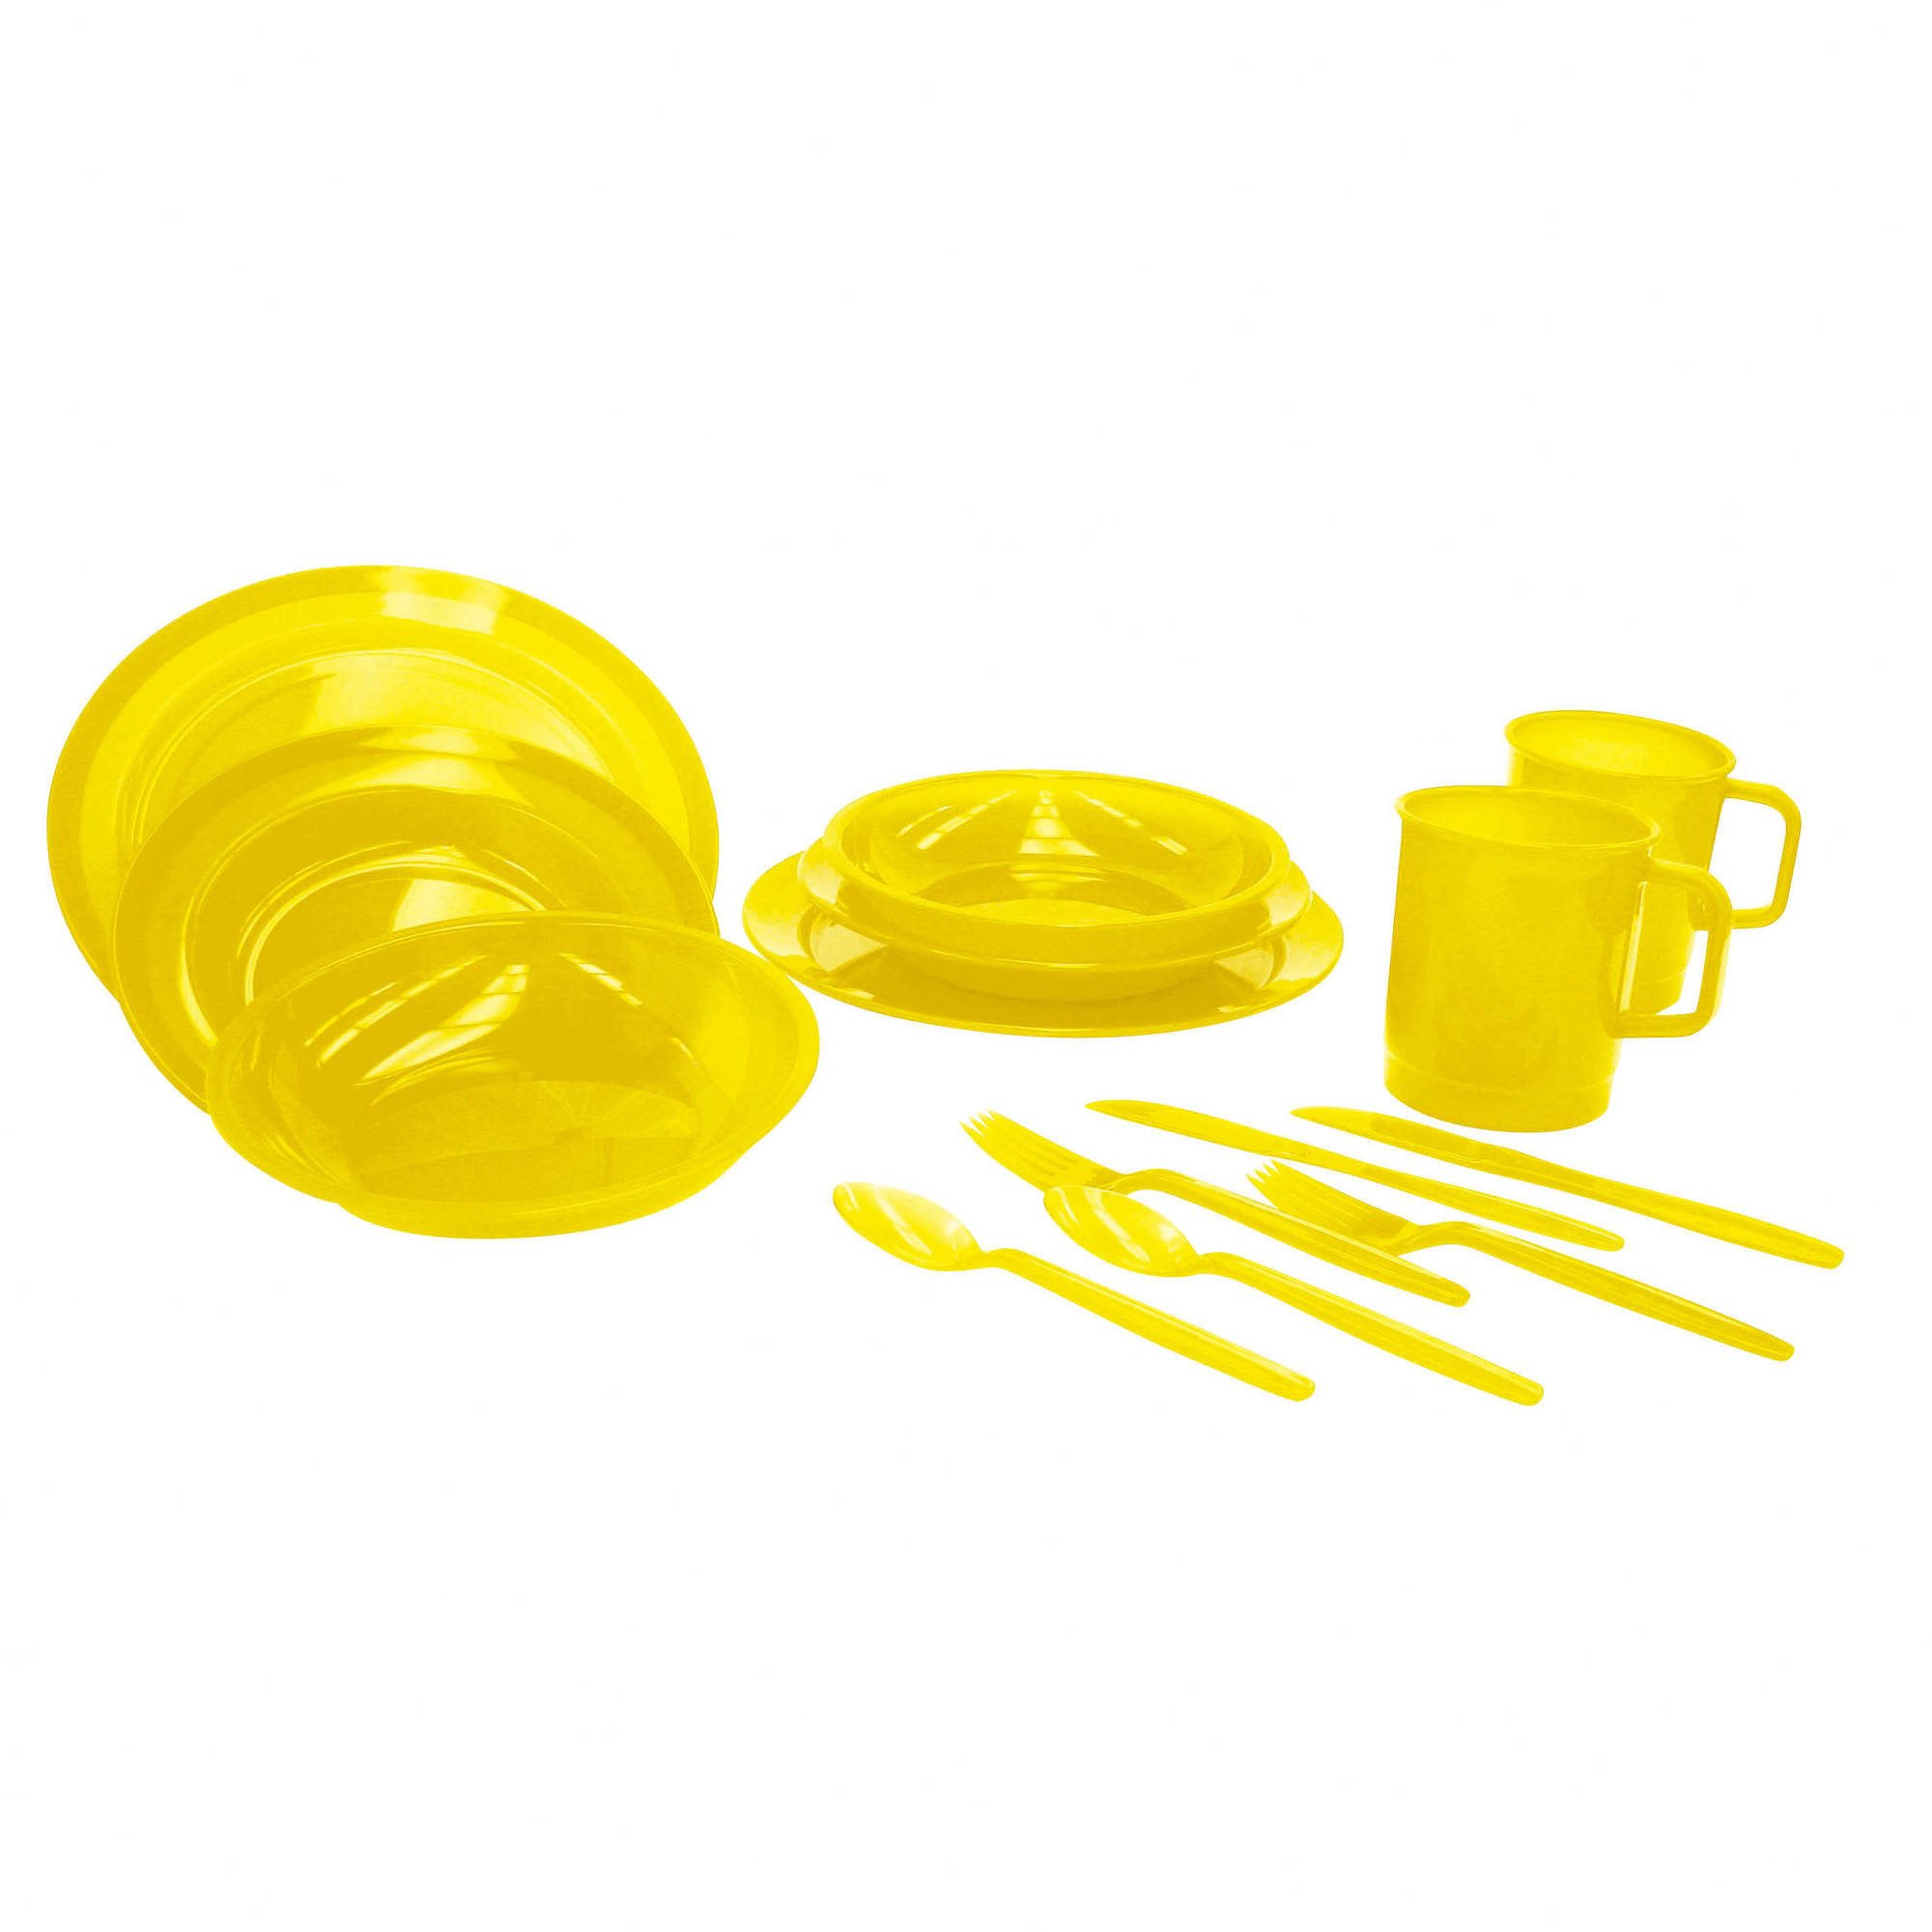 Stansport Cook Set 2 Party, Yellow by Generic